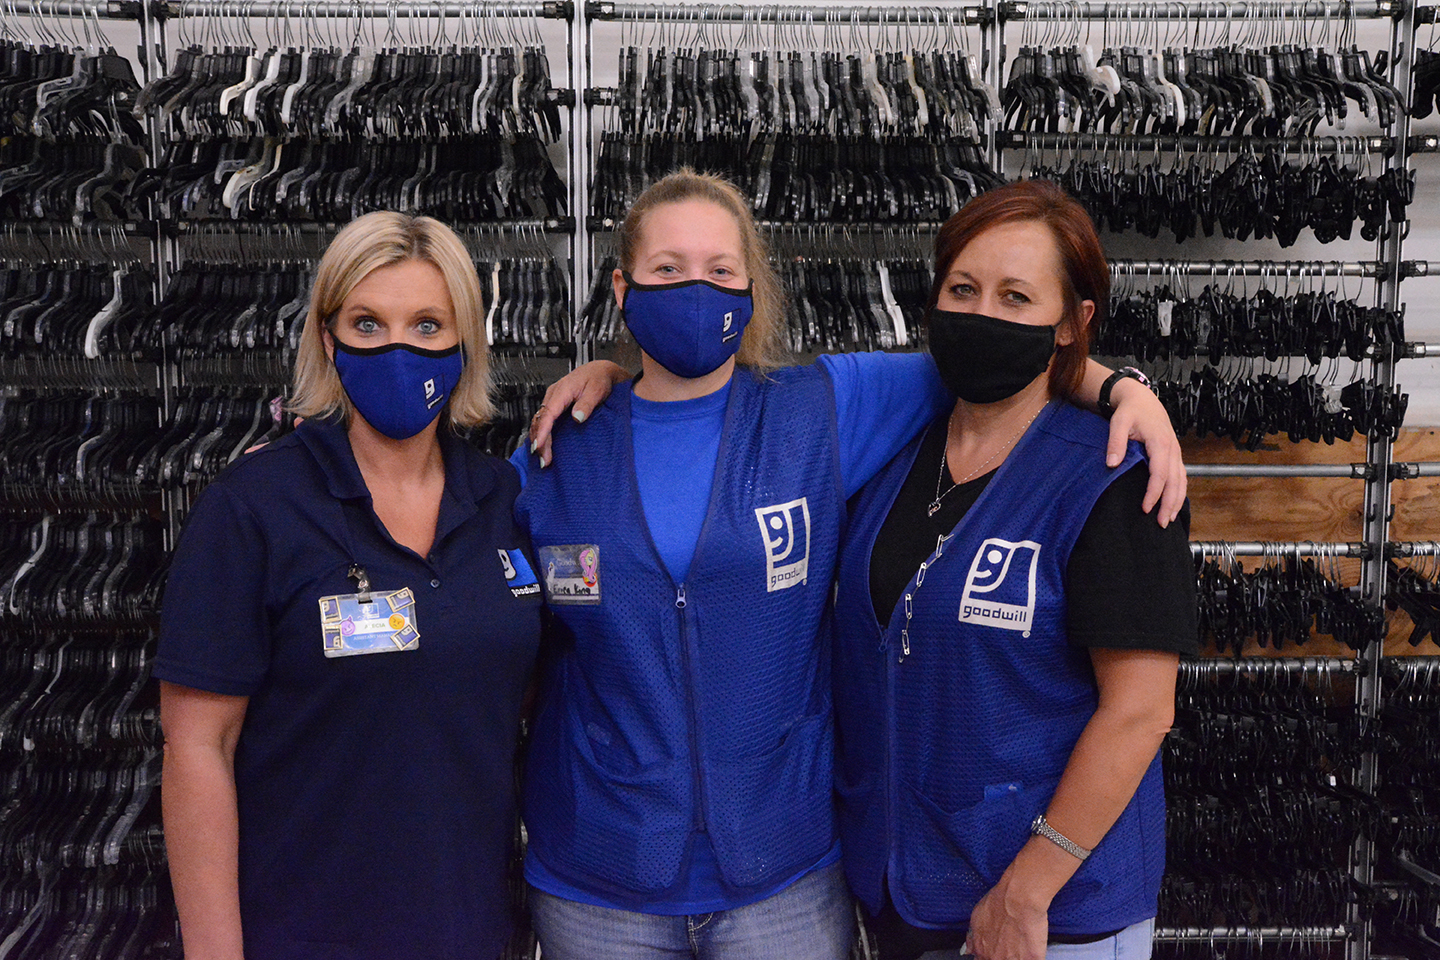 Goodwill teammates are a lot like family, Erica says. She is pictured with teammates Alecia Taylor, left, and Amanda Messick, right.